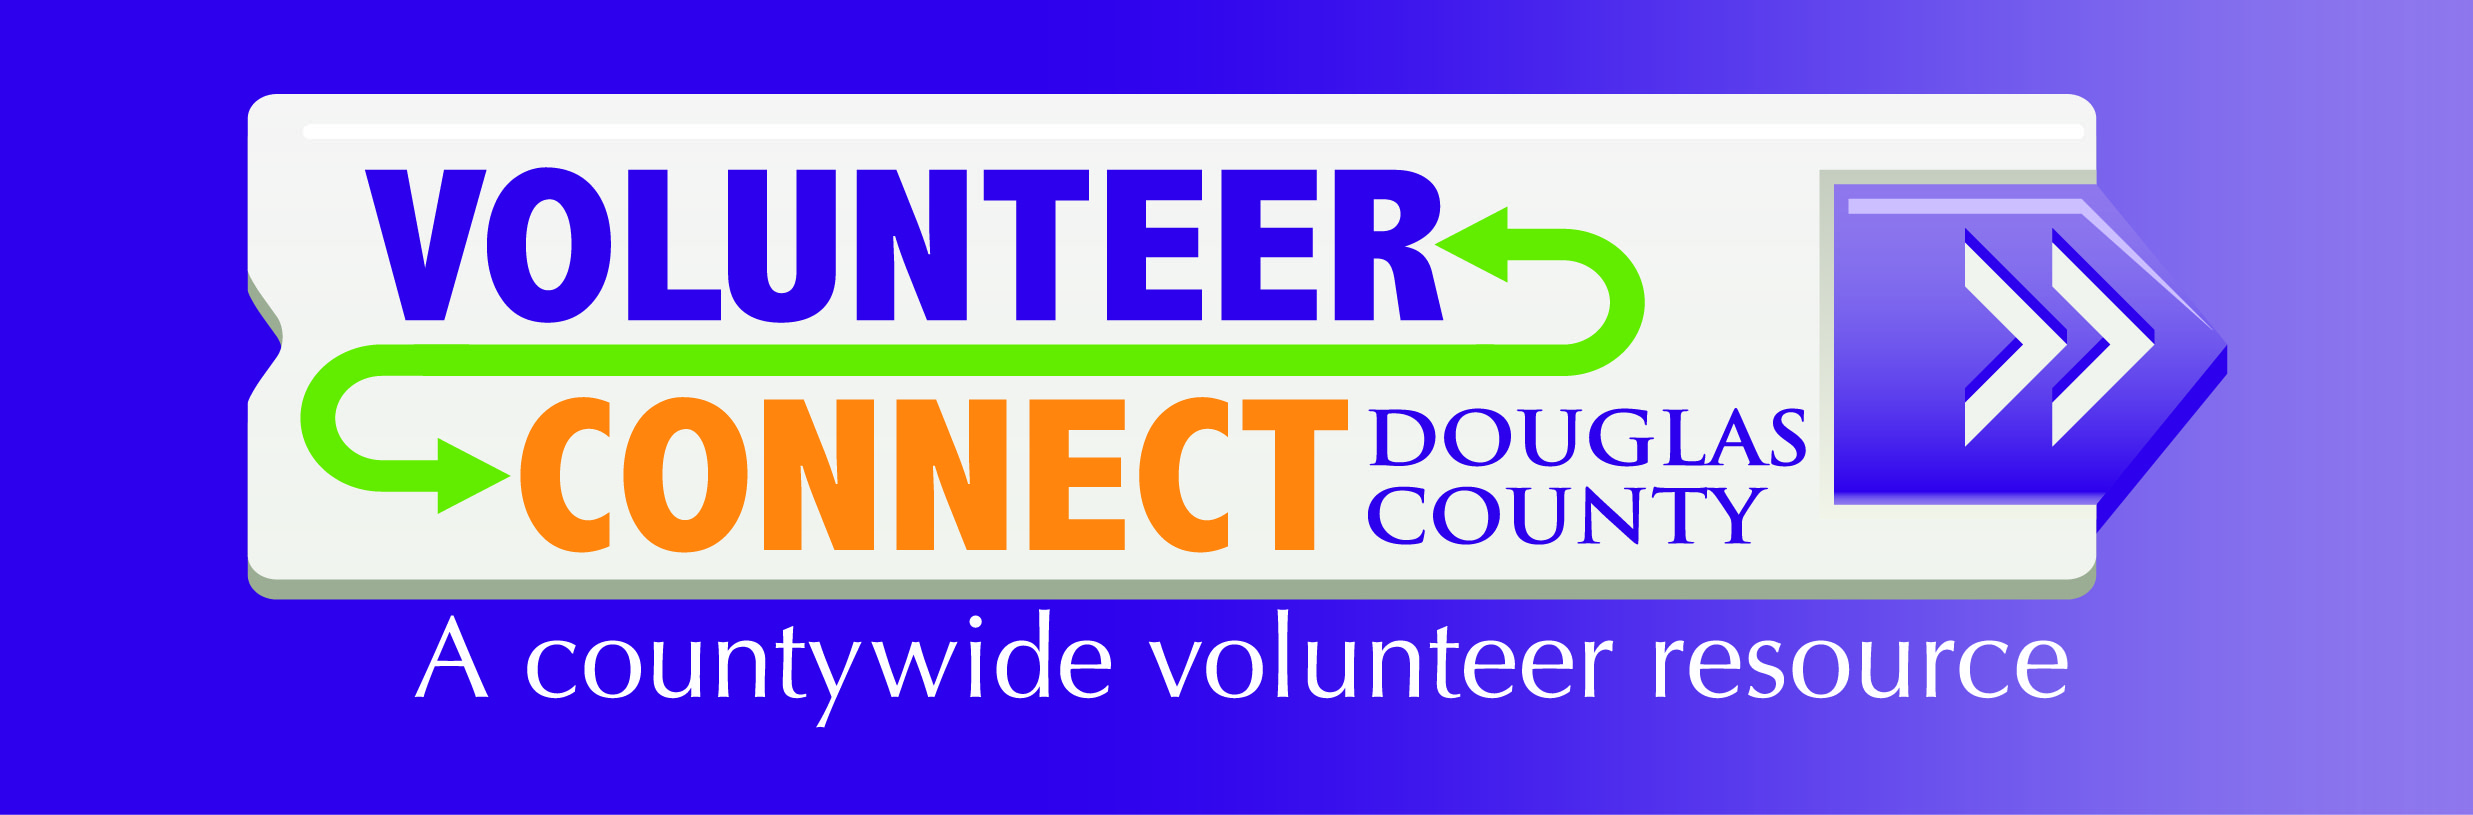 Volunteer Connect Douglas County - A countywide volunteer resource